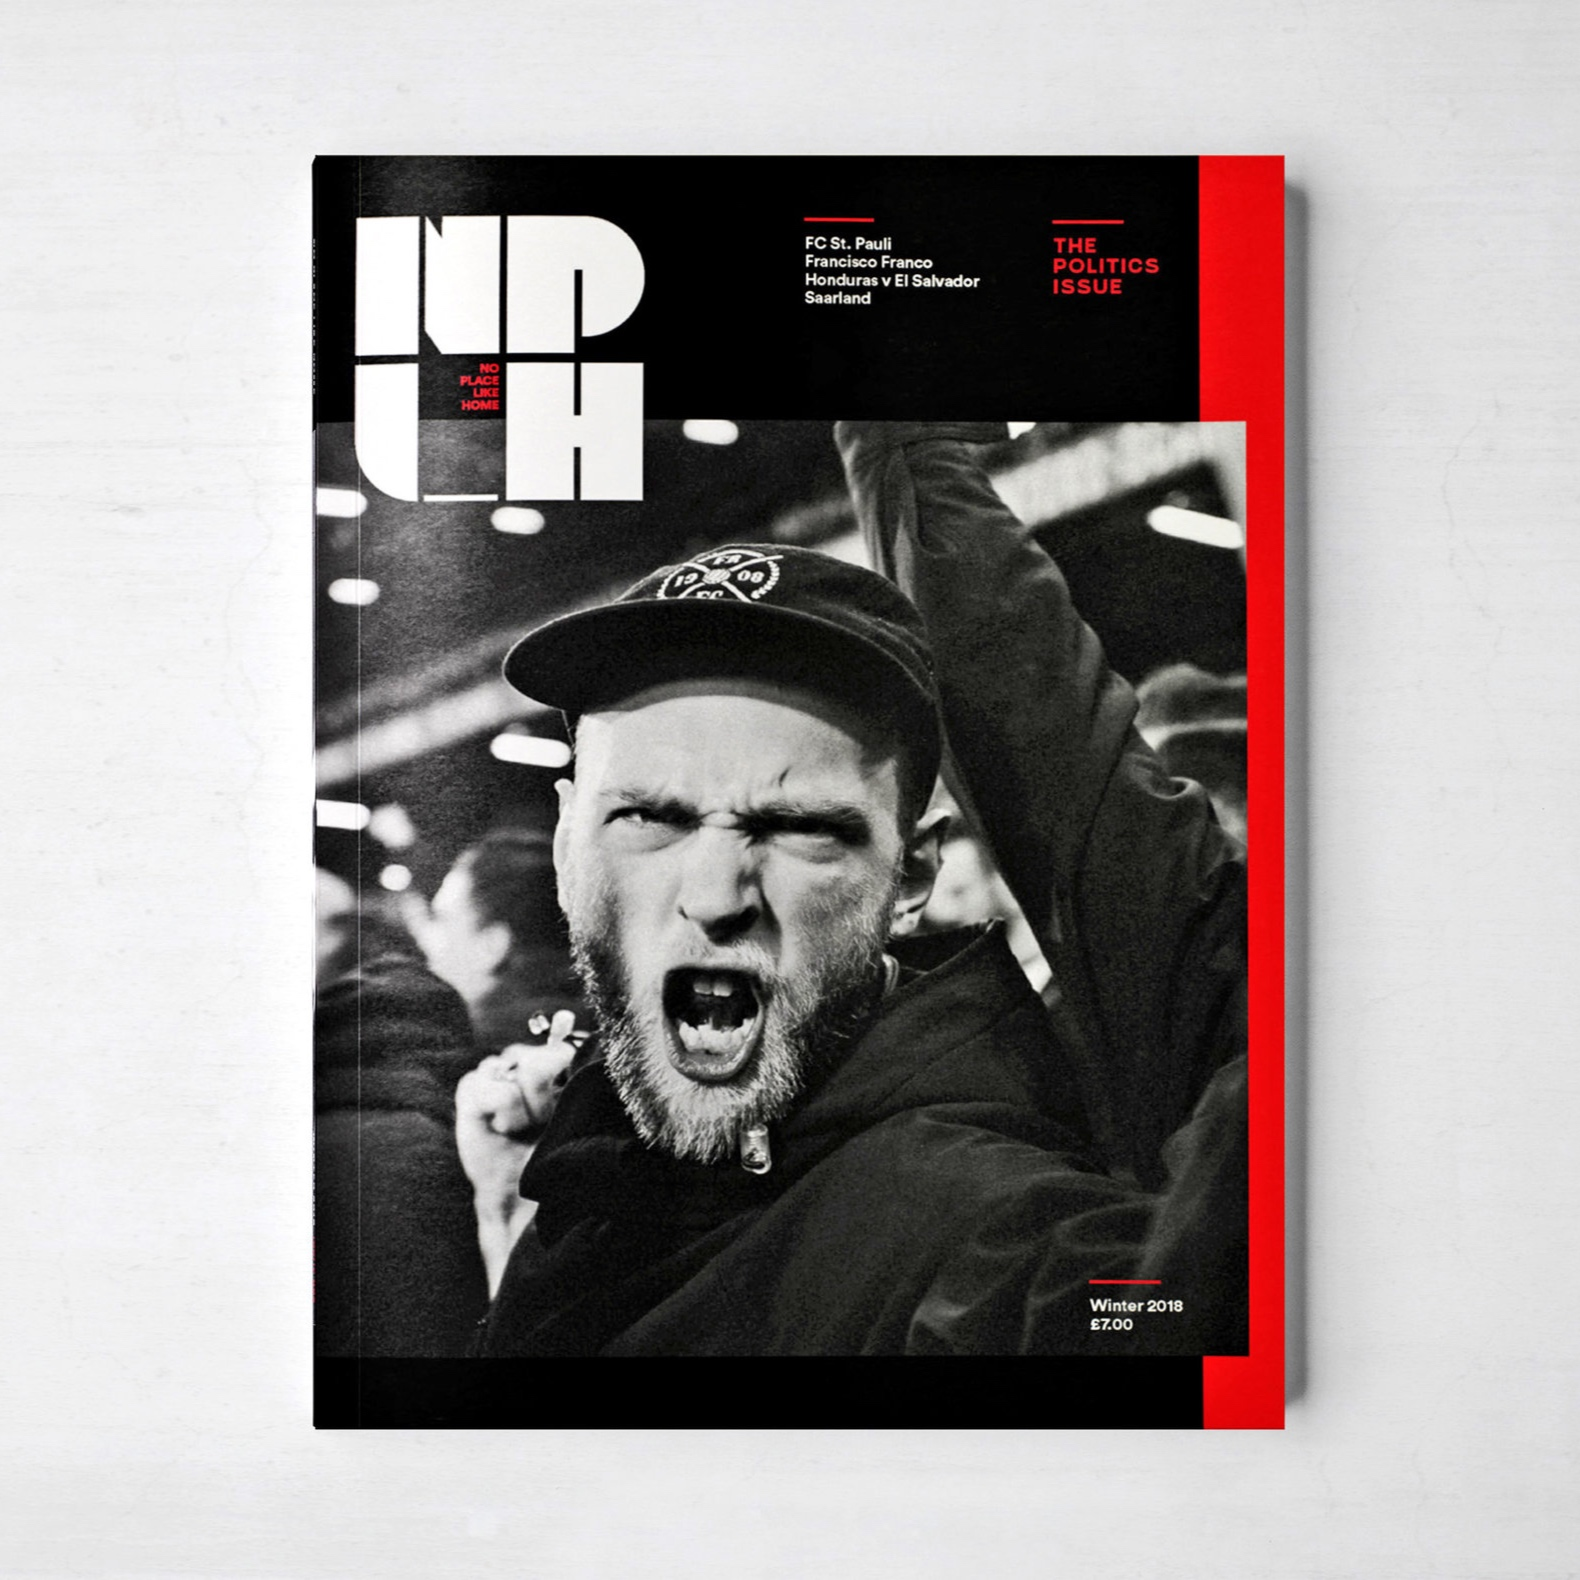 SOLD OUT: ISSUE 3: POLITICS | NOW AVAILABLE AS A DIGITAL COPY